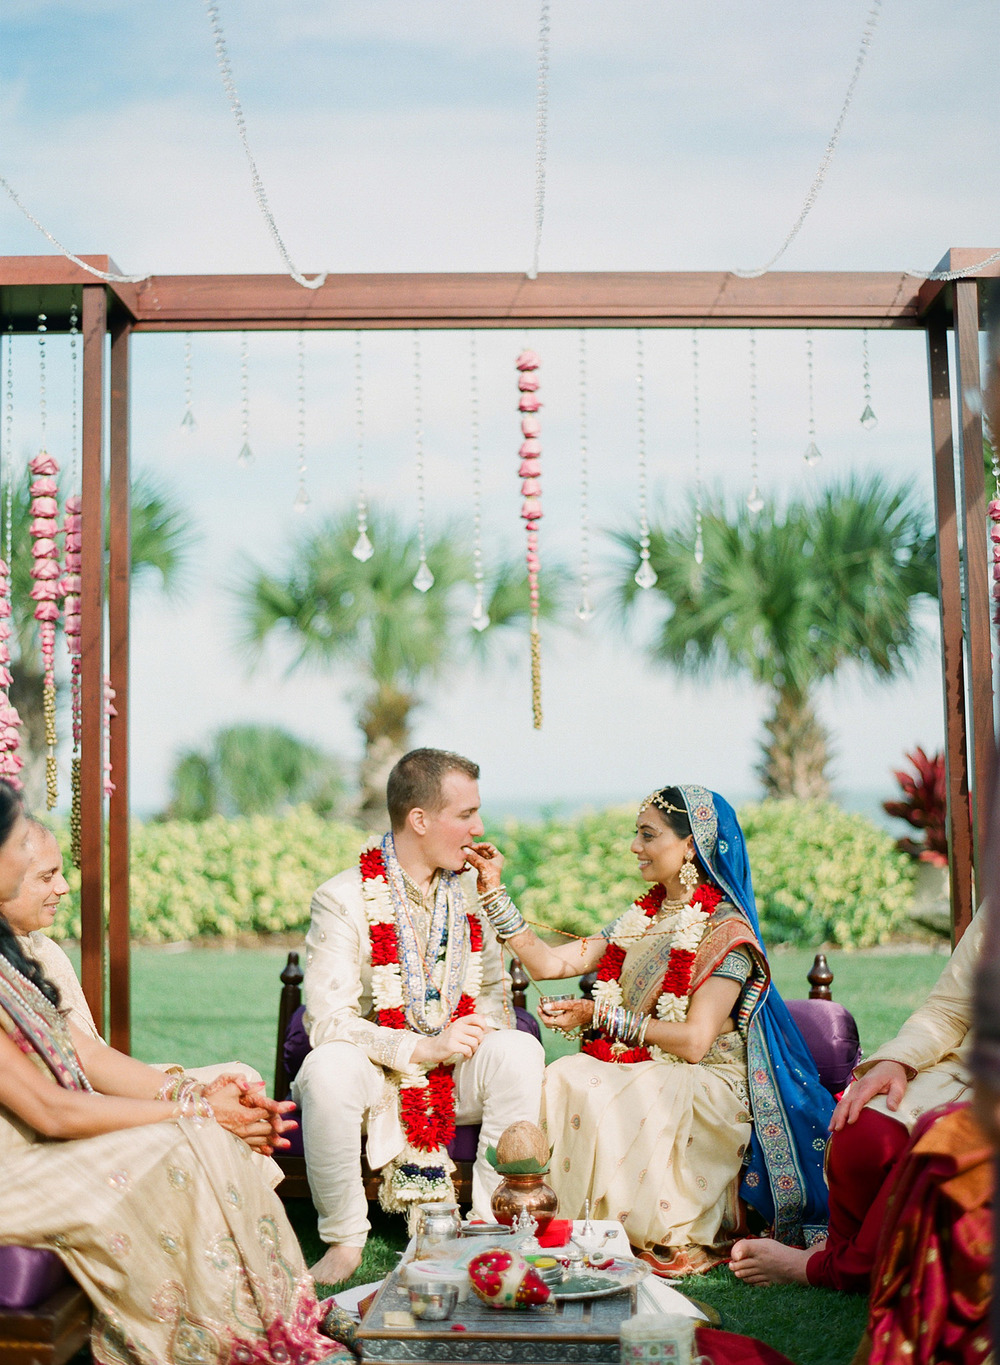 bride and groom at the hindu wedding in florida at the Indian Wedding in Florida photographed by Destination Wedding Photographer, LExia Frank - a top indian wedding photographer - who shoots film for luxury indian weddings preferring the soft skin tones and vibrant colors for indian weddings in india and worldwide